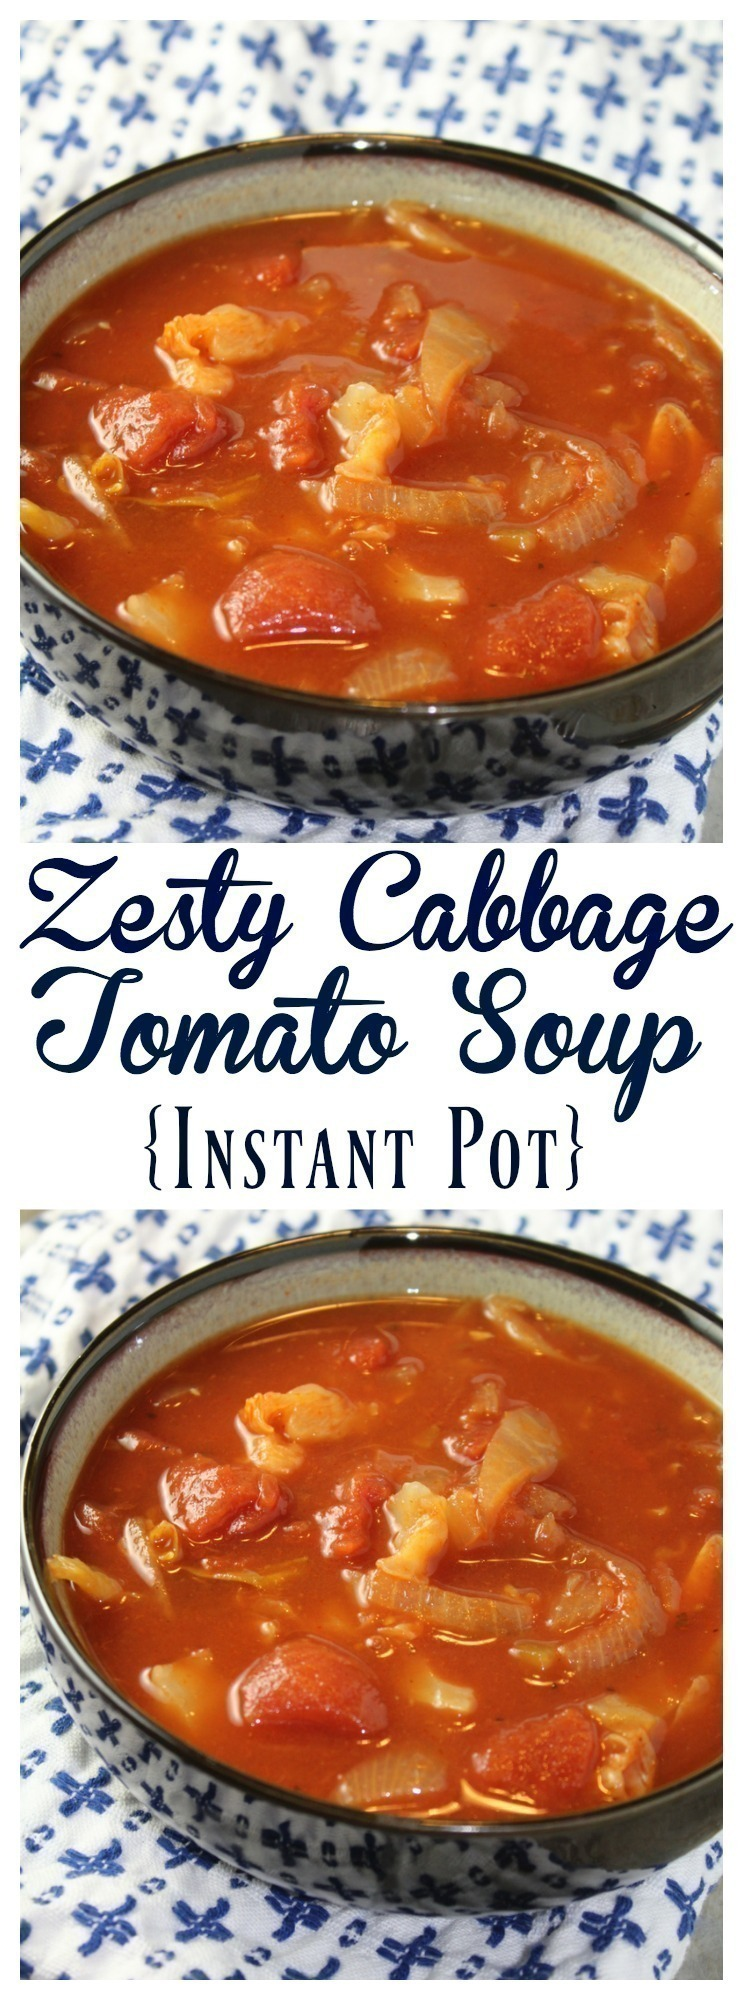 Throw together just a few simple ingredients to make this hearty and filling Zesty Cabbage Tomato Soup in your Instant Pot!